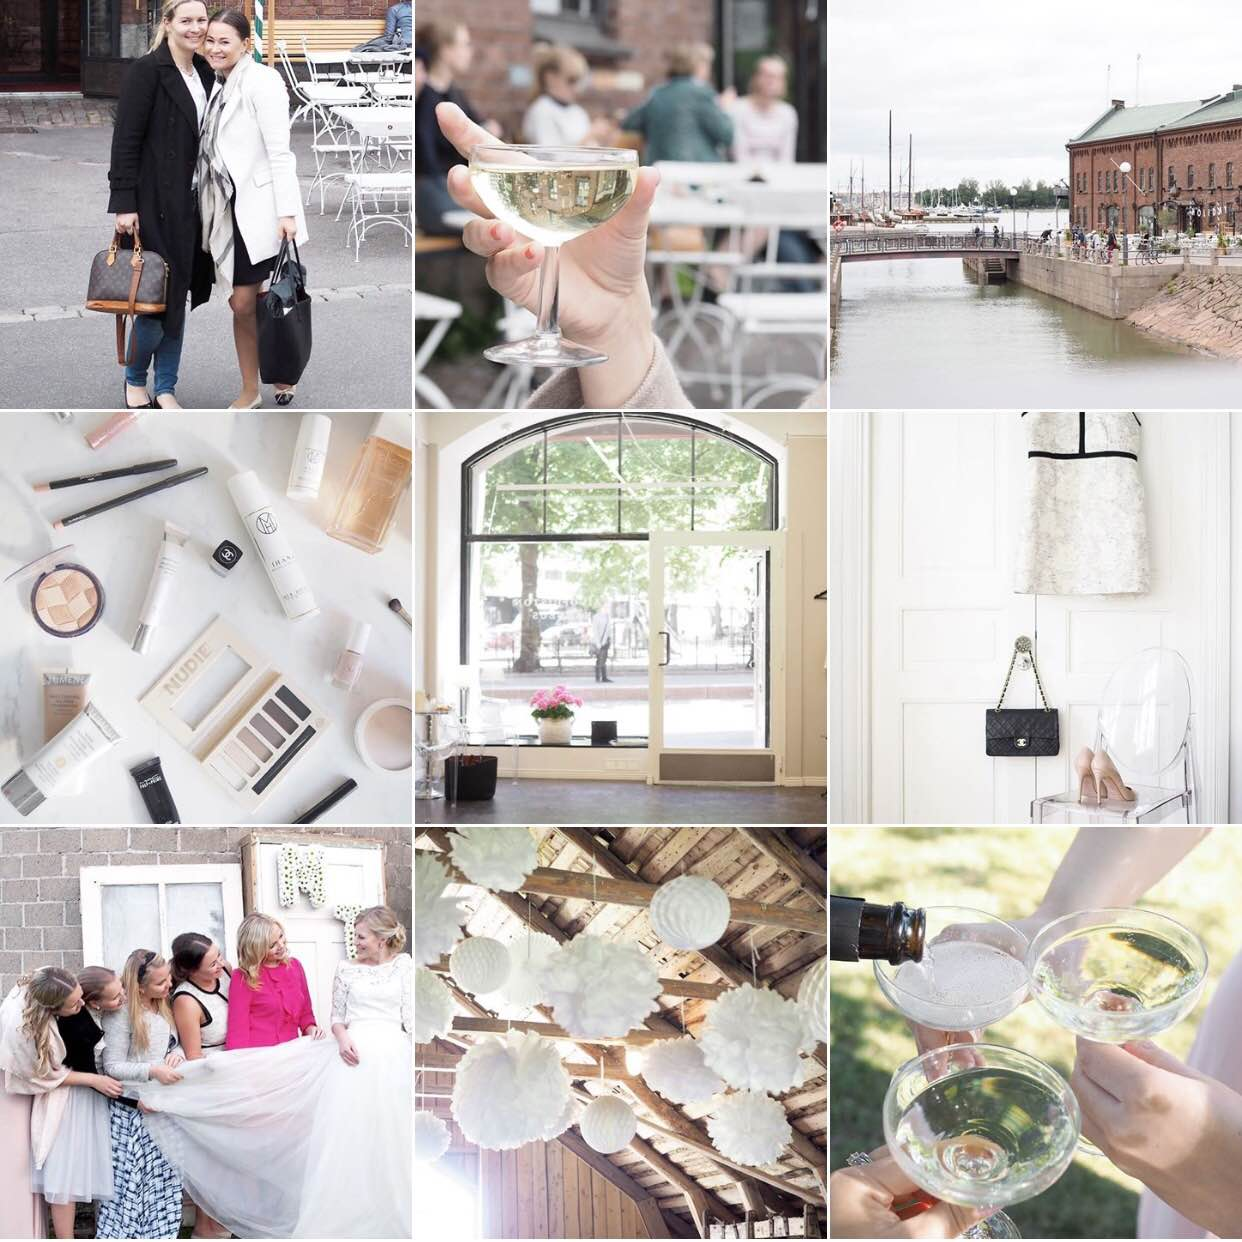 Char and the city - a summery Instagram-feed - follow me as @charandthecity on Instagram!